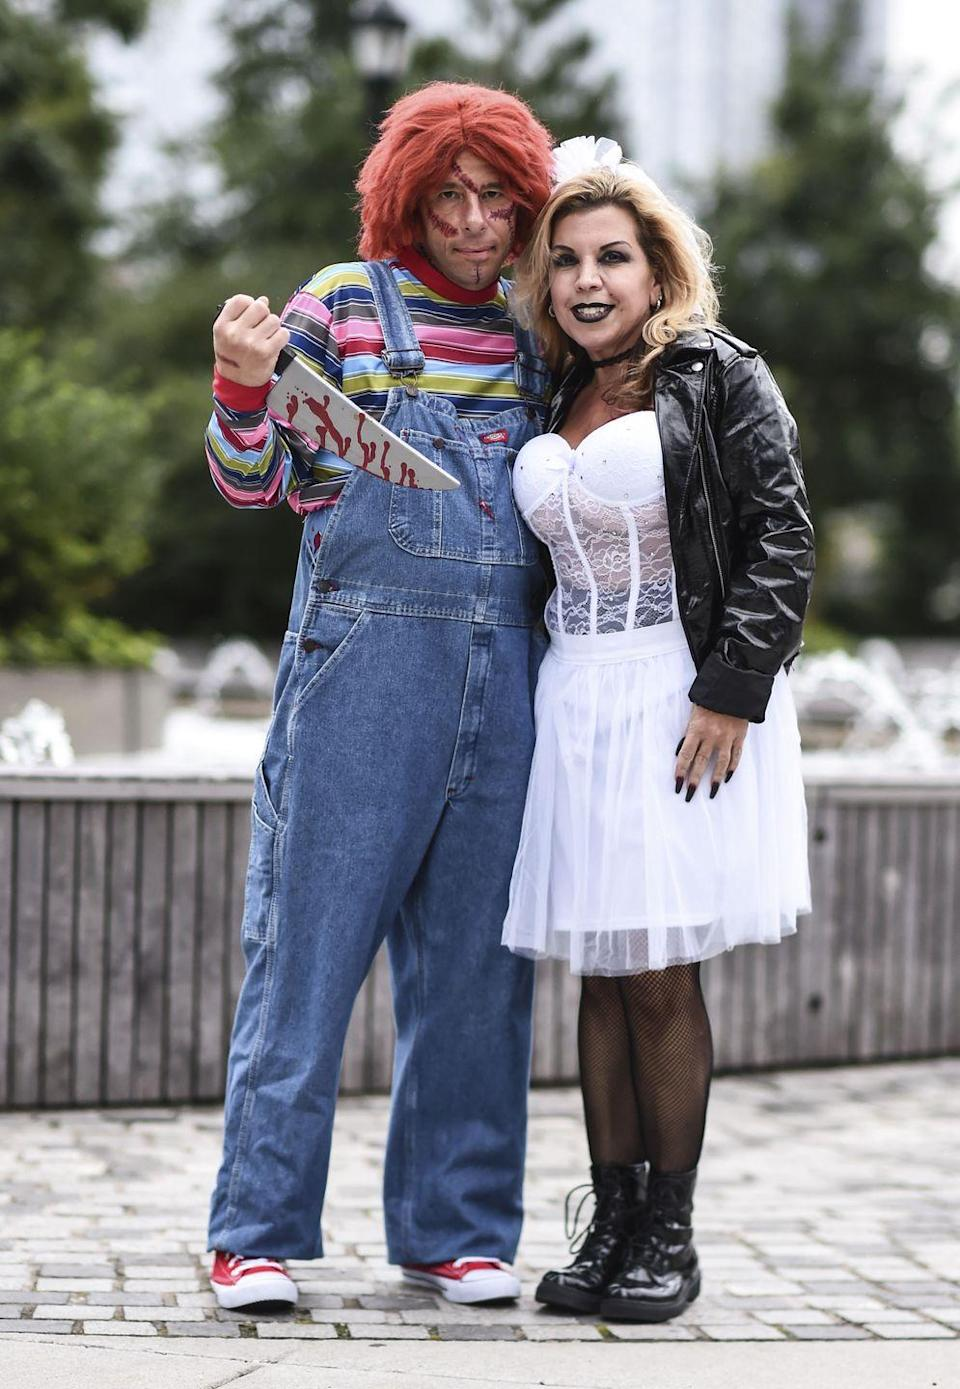 """<p>This costume is the perfect scary throwback, and you can make it your own with <a href=""""https://www.youtube.com/watch?v=xDeyoZbXwpQ"""" rel=""""nofollow noopener"""" target=""""_blank"""" data-ylk=""""slk:creepy makeup"""" class=""""link rapid-noclick-resp"""">creepy makeup</a> and the <a href=""""https://go.redirectingat.com?id=74968X1596630&url=https%3A%2F%2Fwww.walmart.com%2Fip%2FMorris-Costumes-Glow-in-the-Dark-Butcher-Knife-Halloween-Accessory%2F26980495&sref=https%3A%2F%2Fwww.womansday.com%2Fstyle%2Fg28669645%2Fscary-halloween-couples-costumes%2F"""" rel=""""nofollow noopener"""" target=""""_blank"""" data-ylk=""""slk:killer doll's signature butcher knife"""" class=""""link rapid-noclick-resp"""">killer doll's signature butcher knife</a>. Just remember to occasionally throw out the line, """"Hi, I'm Chucky! Wanna play?""""</p><p><a class=""""link rapid-noclick-resp"""" href=""""https://www.amazon.com/Franco-American-Novelty-Company-49582/dp/B074HS97FN/?tag=syn-yahoo-20&ascsubtag=%5Bartid%7C10070.g.28669645%5Bsrc%7Cyahoo-us"""" rel=""""nofollow noopener"""" target=""""_blank"""" data-ylk=""""slk:Shop Chucky Costume"""">Shop Chucky Costume</a></p><p><a class=""""link rapid-noclick-resp"""" href=""""https://www.amazon.com/Bride-Chucky-Adult-Costume-Large/dp/B00BLMVZSW/?tag=syn-yahoo-20&ascsubtag=%5Bartid%7C10070.g.28669645%5Bsrc%7Cyahoo-us"""" rel=""""nofollow noopener"""" target=""""_blank"""" data-ylk=""""slk:Shop Bride of Chucky Costume"""">Shop Bride of Chucky Costume</a><br> </p>"""